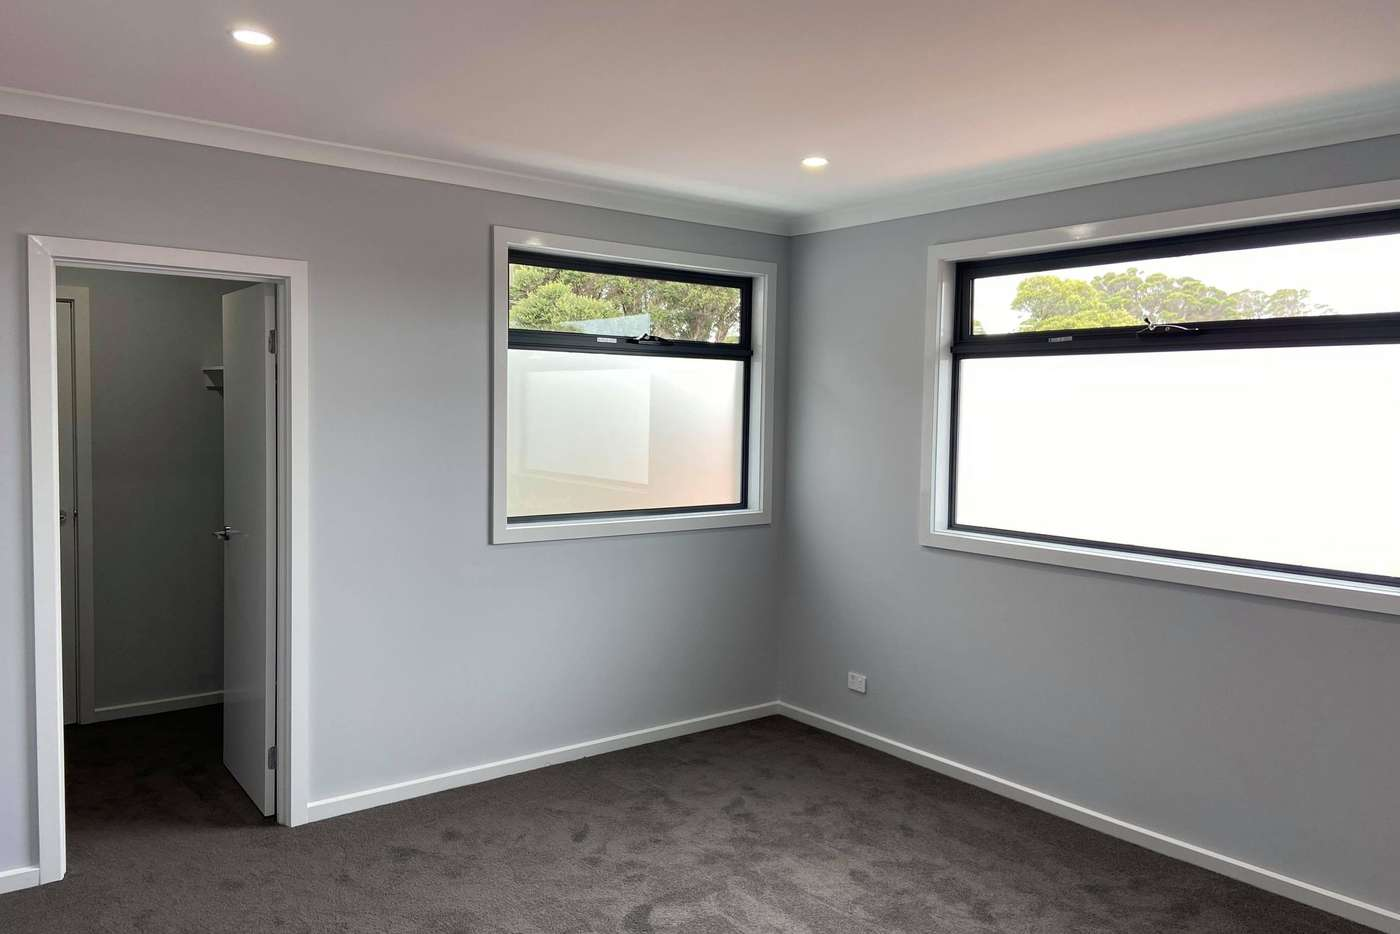 Seventh view of Homely townhouse listing, 17 Beevers Street, Altona North VIC 3025